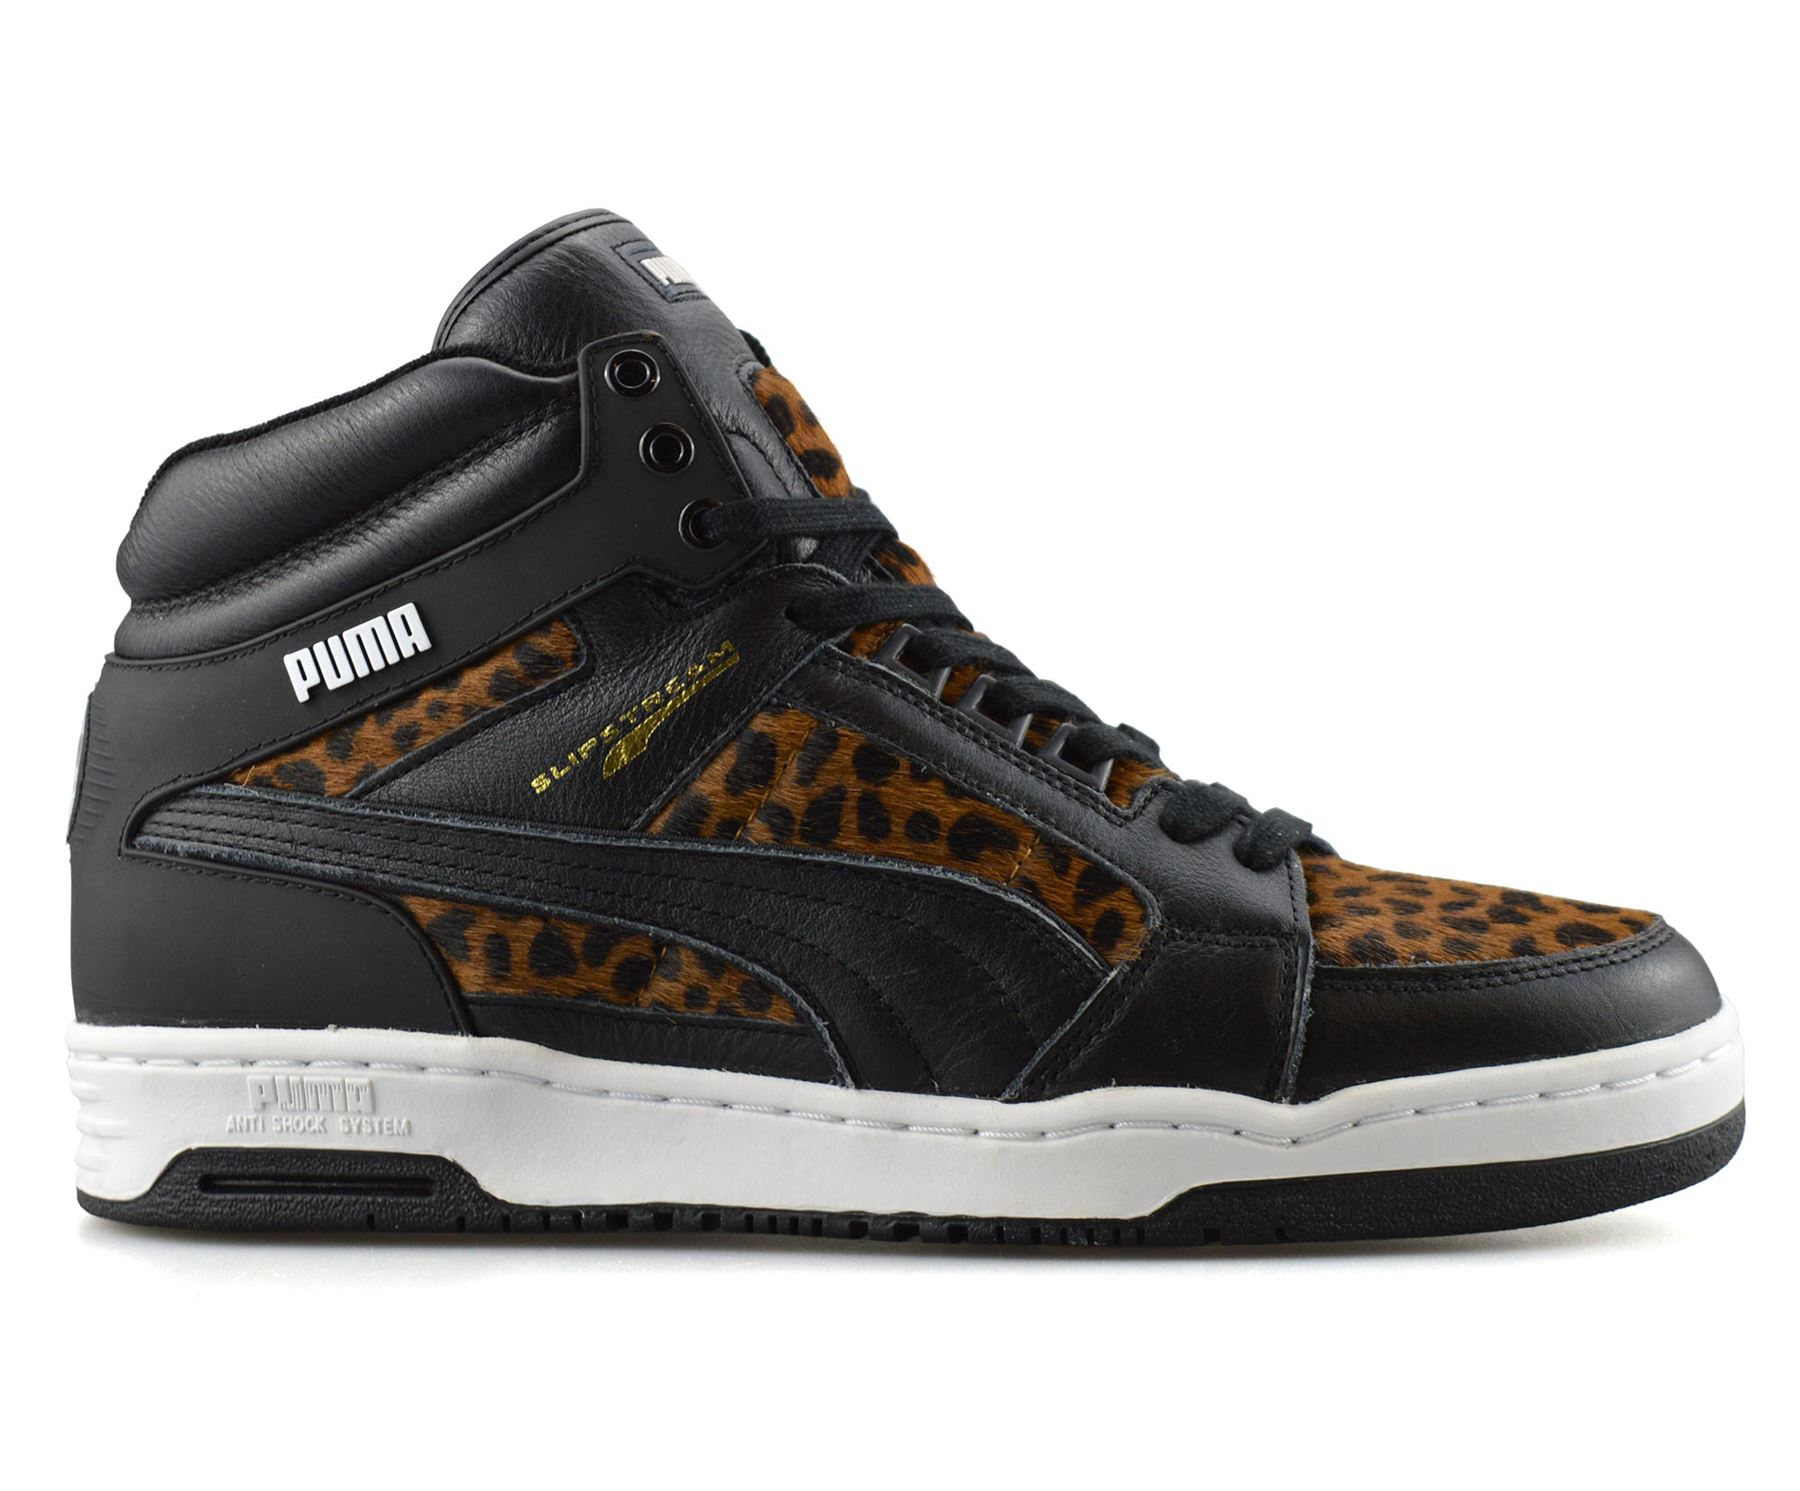 Details about Mens Puma Slipstream Leather Hi Tops Basketball Trainers Ankle Boots Shoes Size